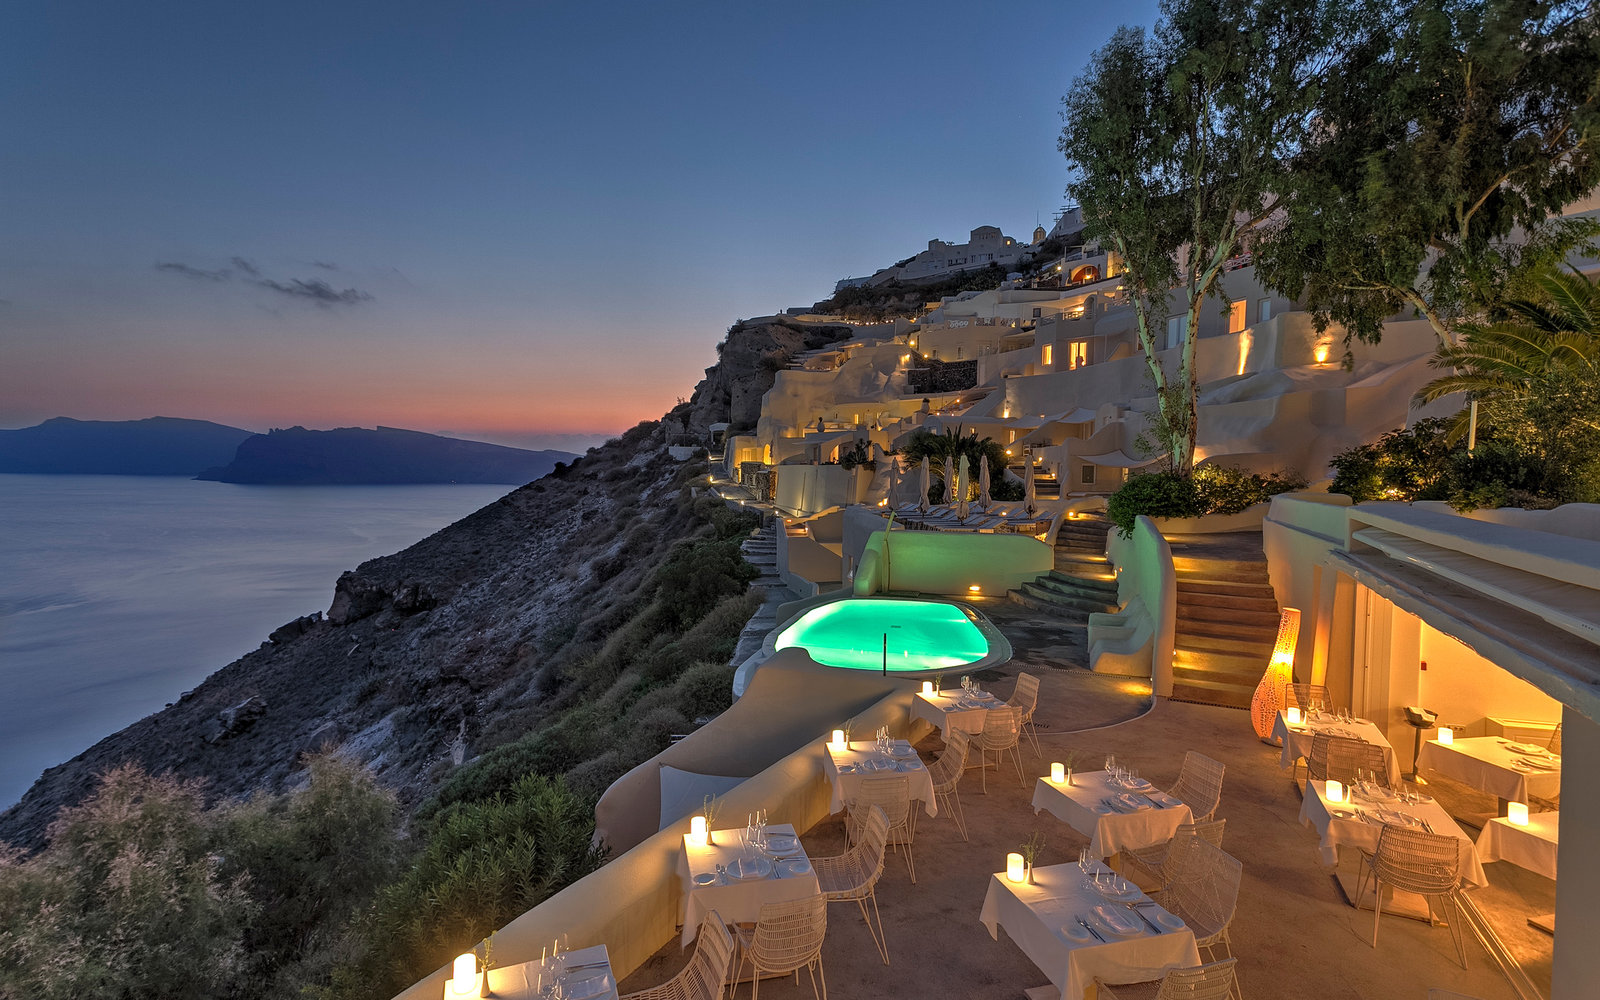 13. Mystique, Santorini, Greece